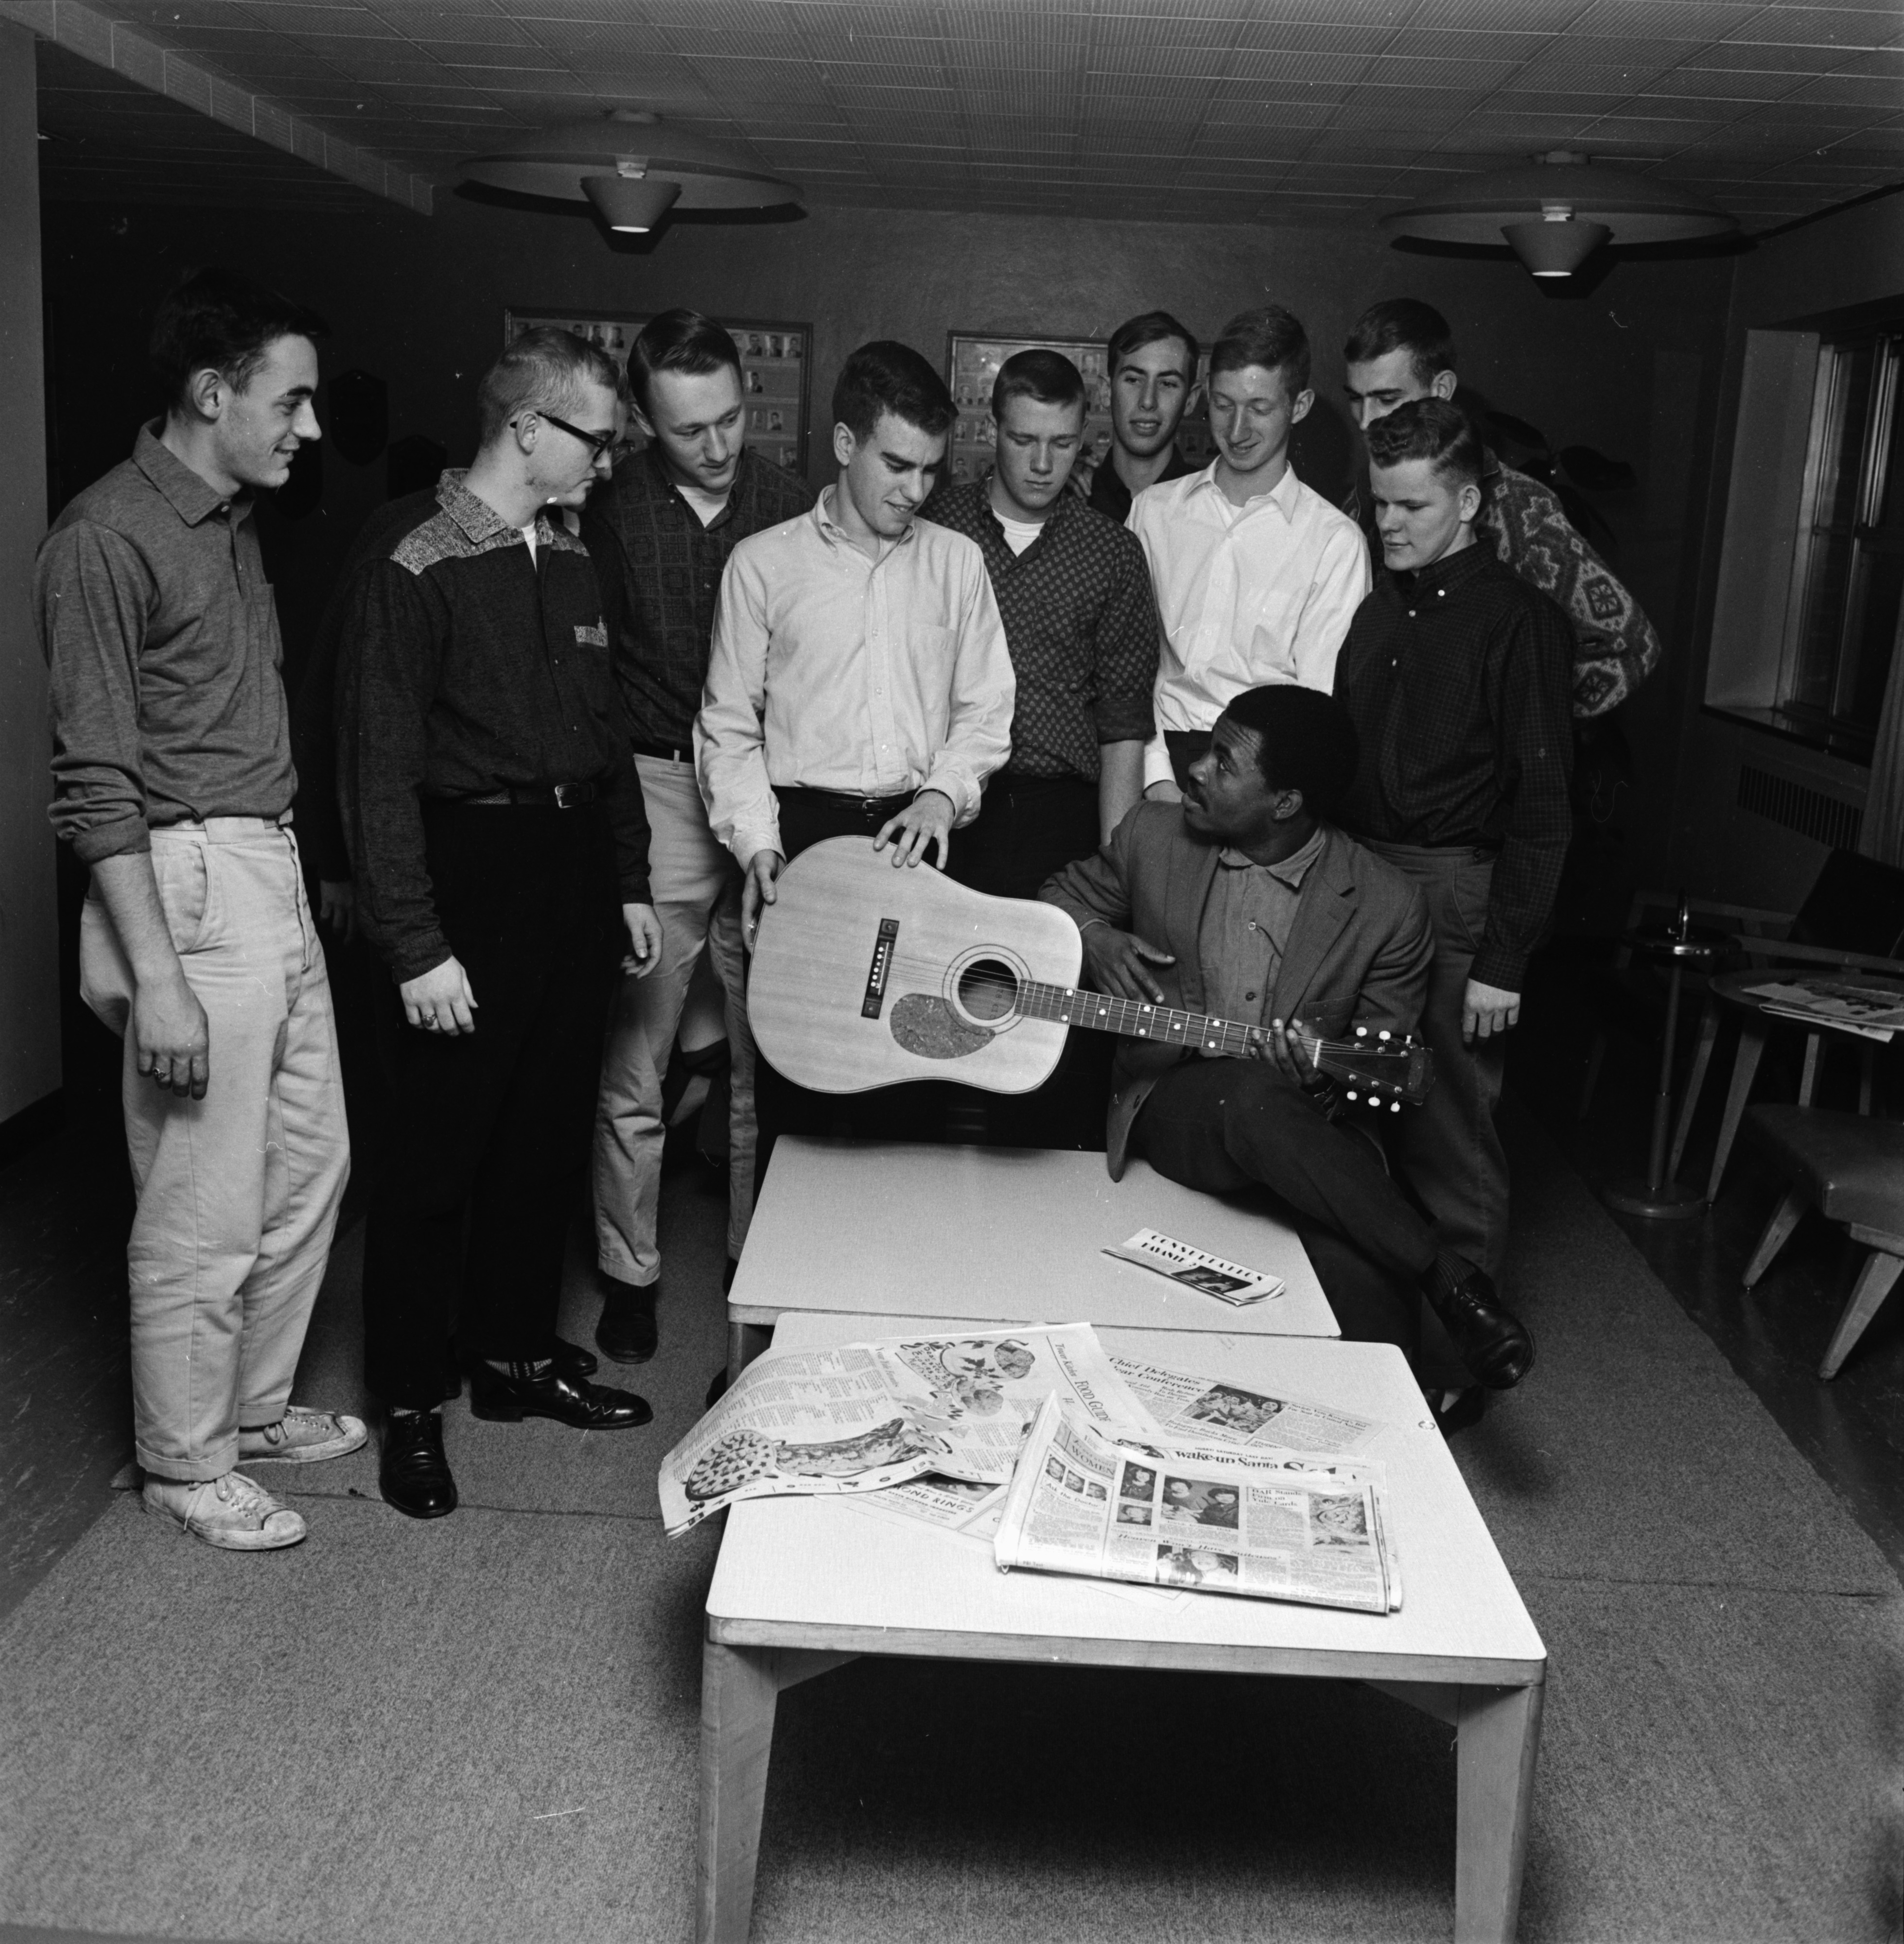 Felix Moukoko Ndoumbe, U-M student, receives an electric guitar from students in South Quad, December 1961 image